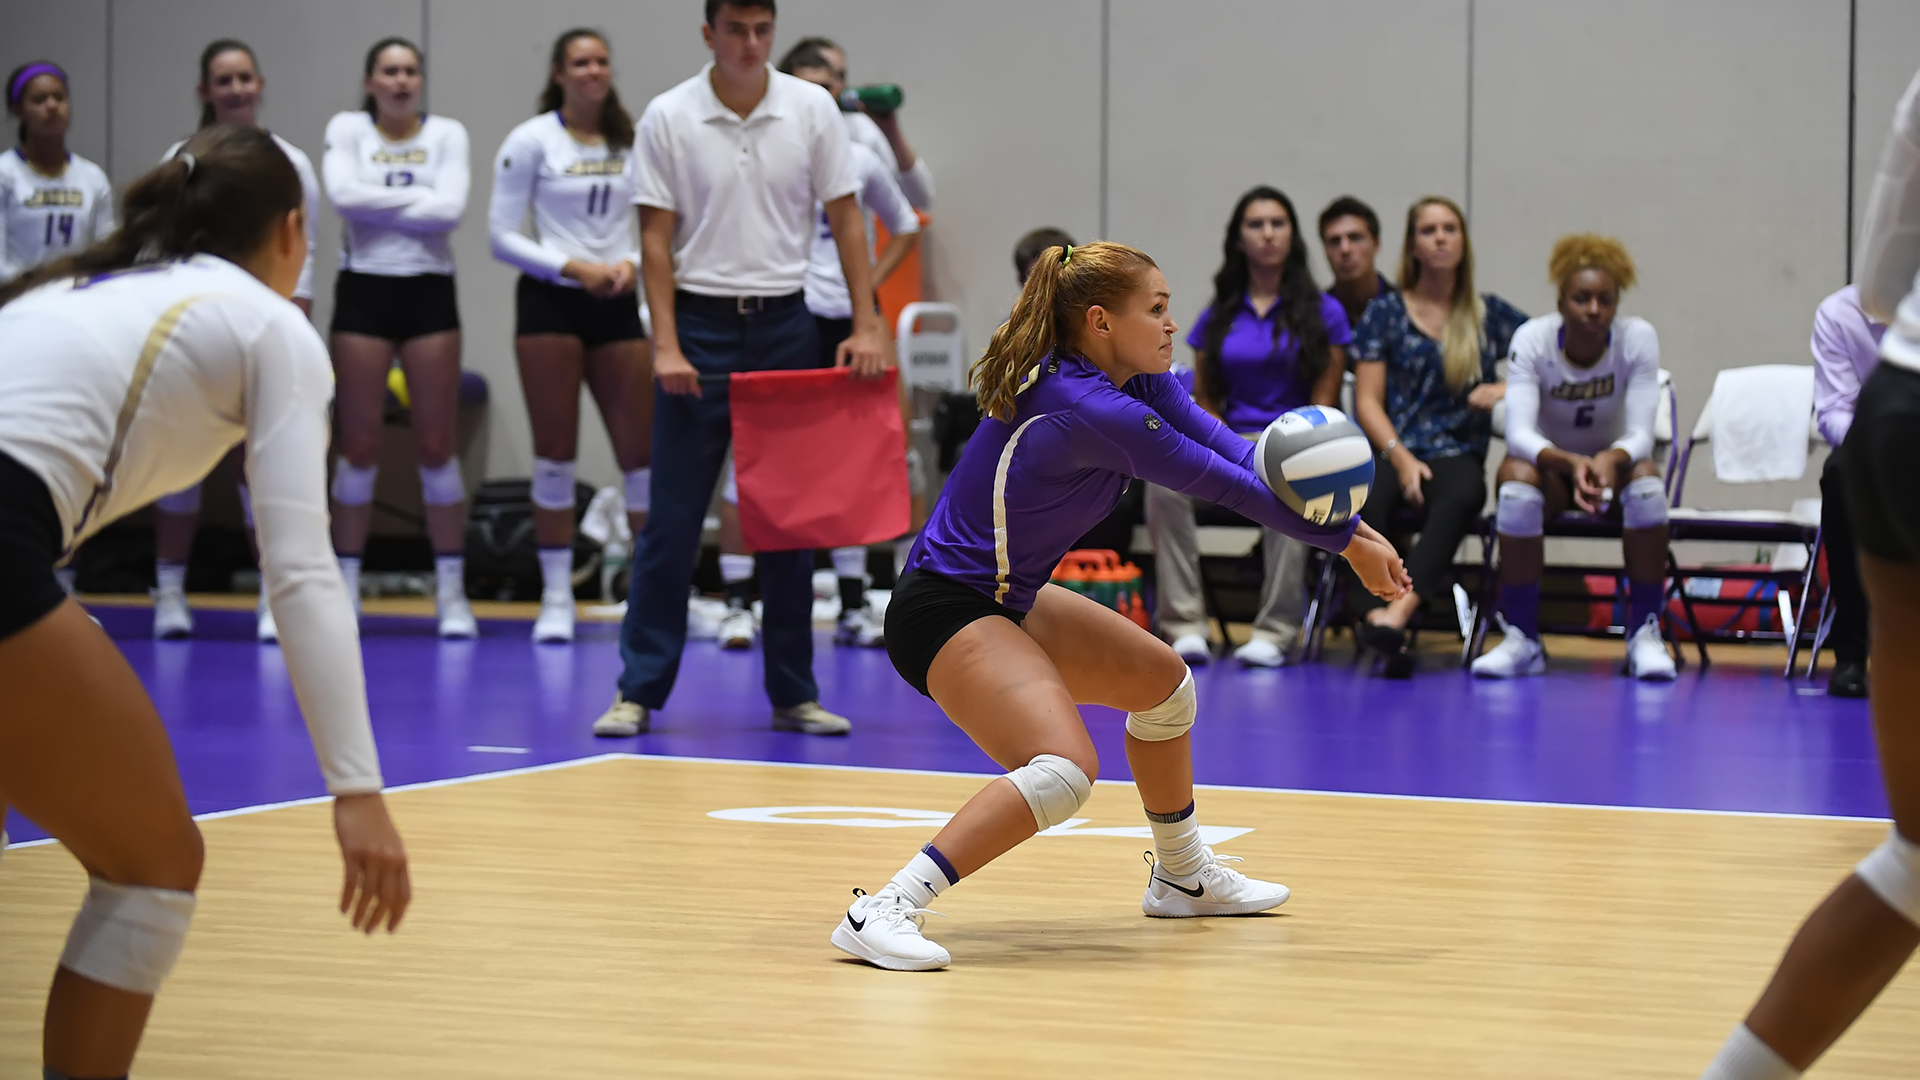 Women's Volleyball: Dukes Suffer Five-Set Heartbreaker to VCU